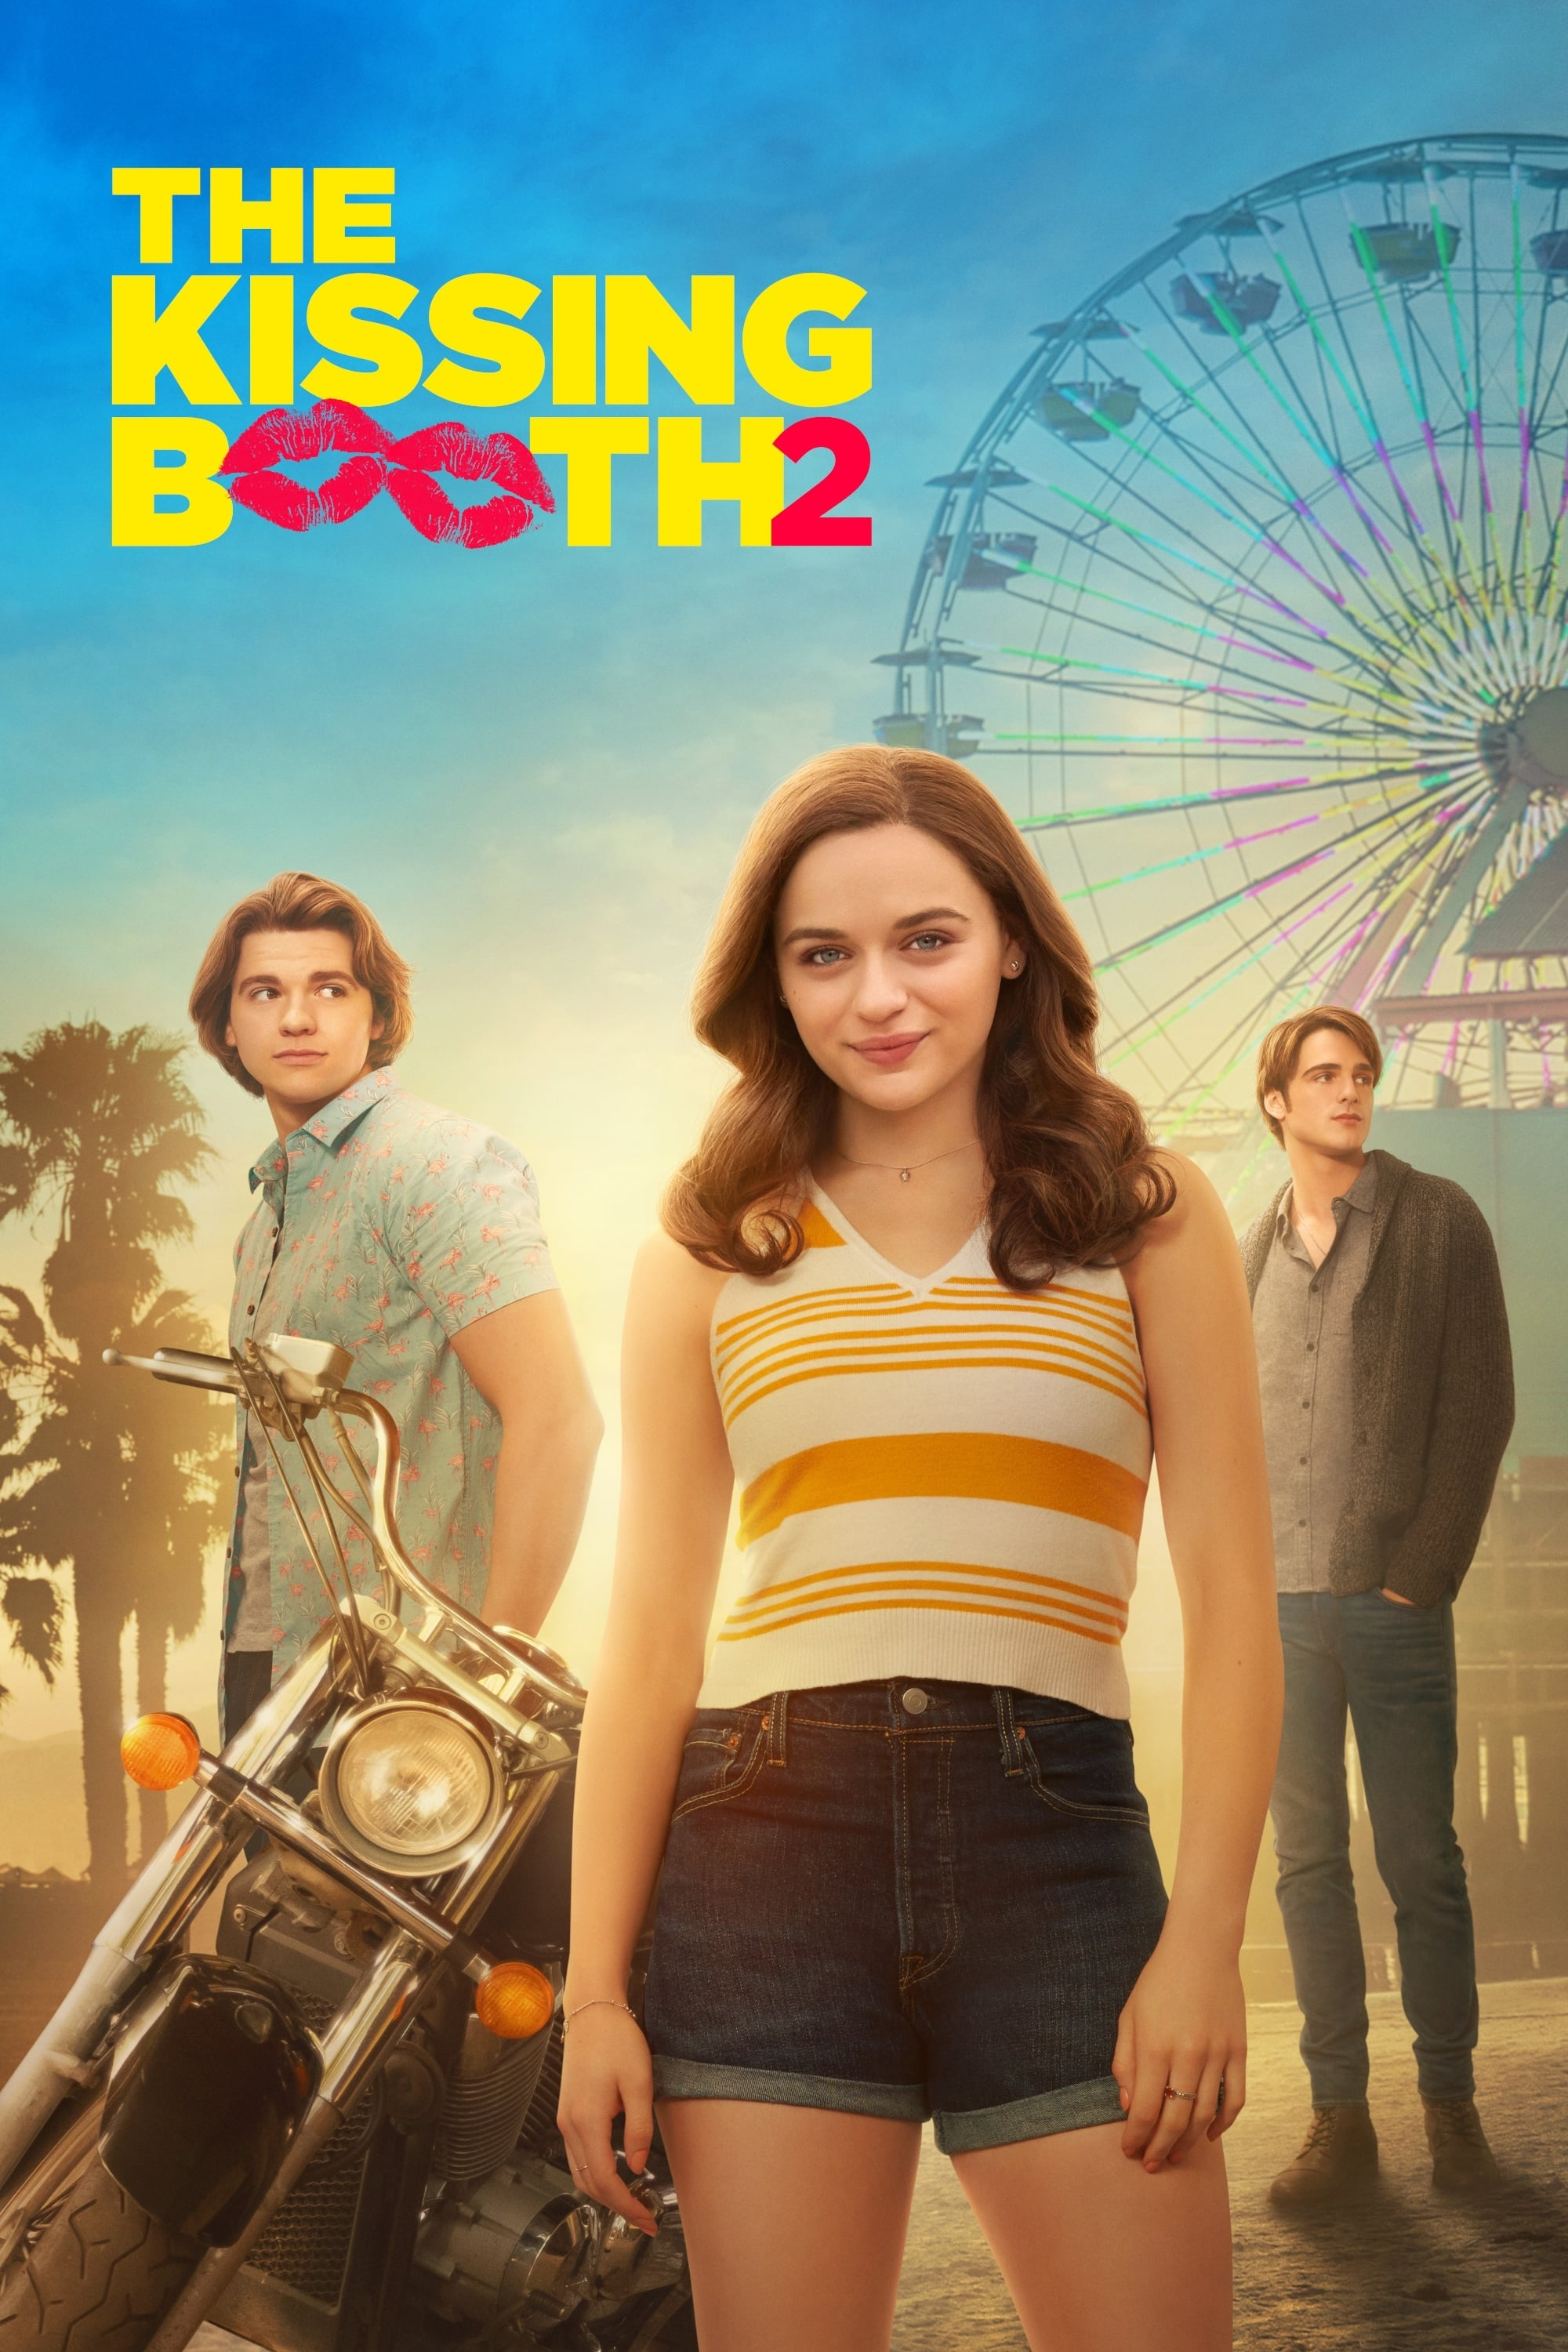 Watch The Kissing Booth 2 Online